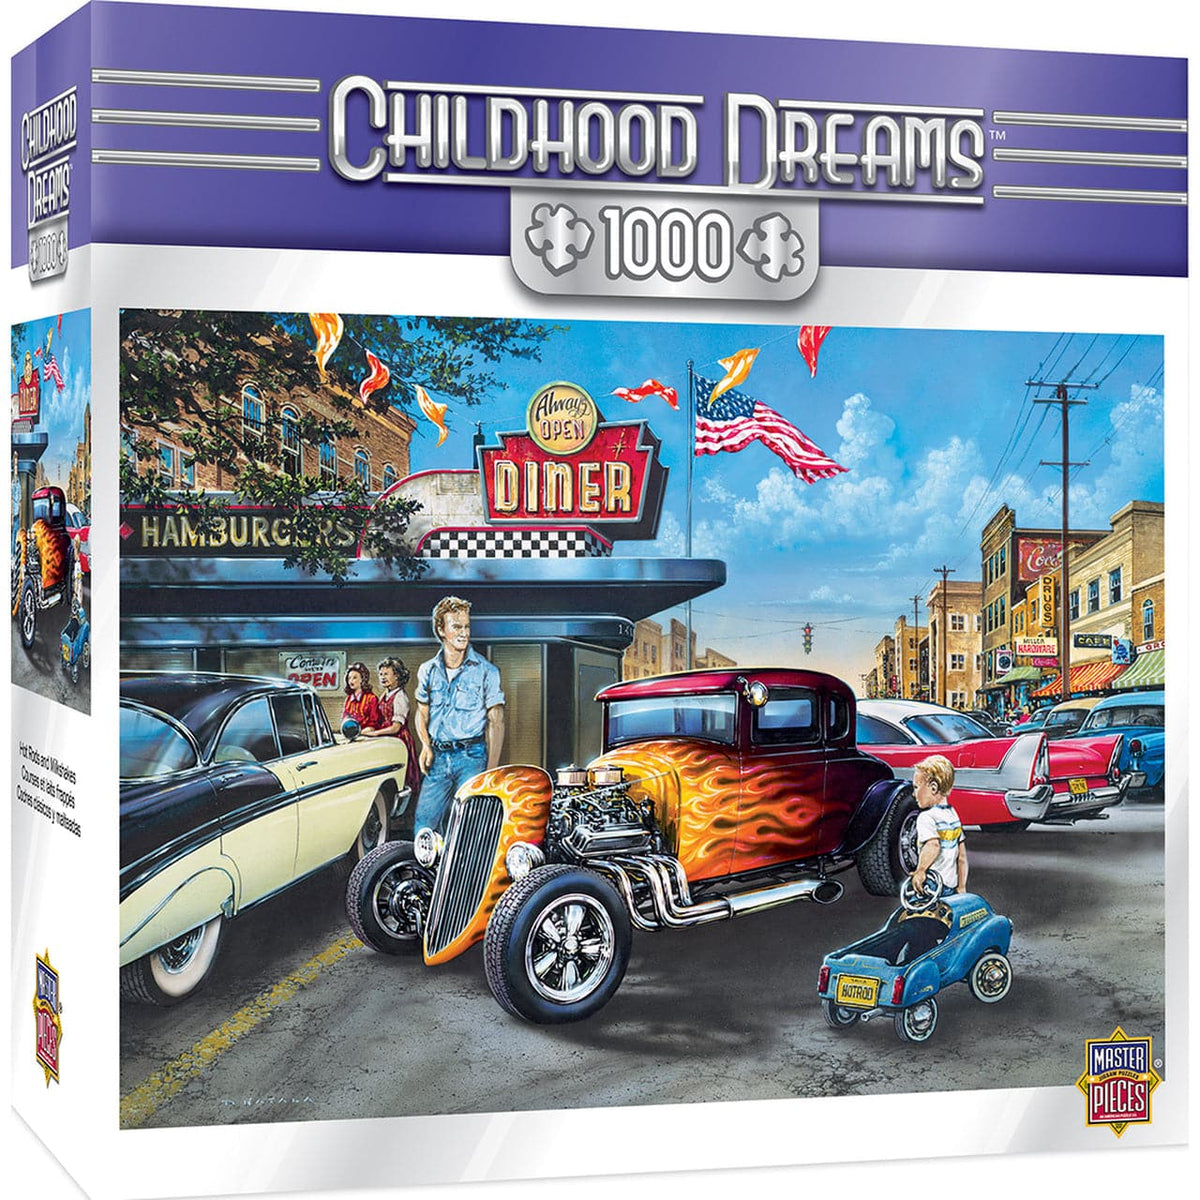 Childhood Dreams - Hot Rods and Milkshakes - 1,000 Piece Puzzle - Legacy Toys